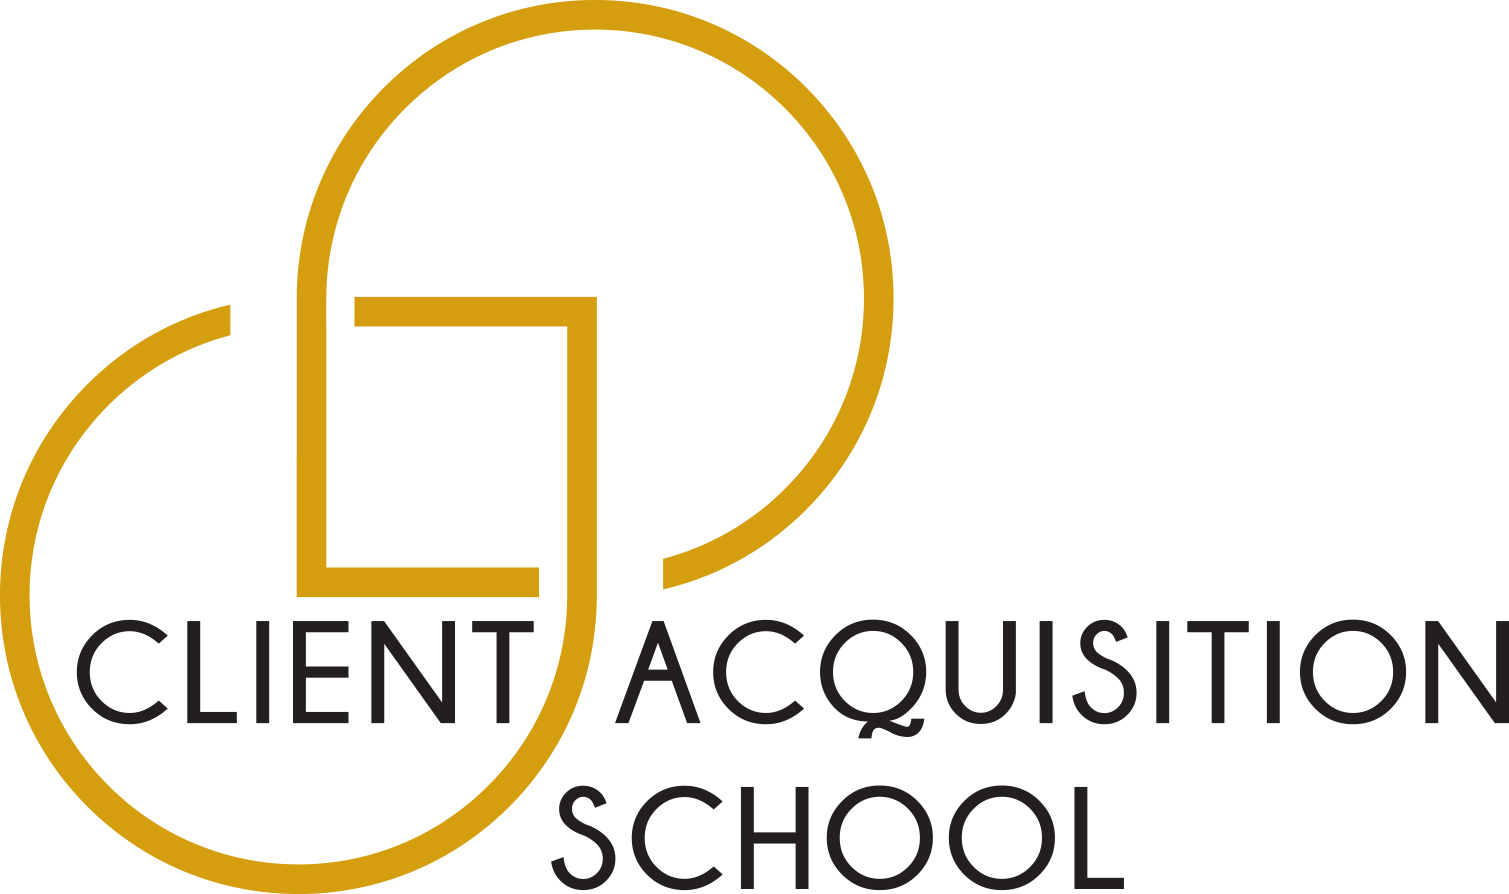 Client Acquisition School-Alternative Logo-Stacked